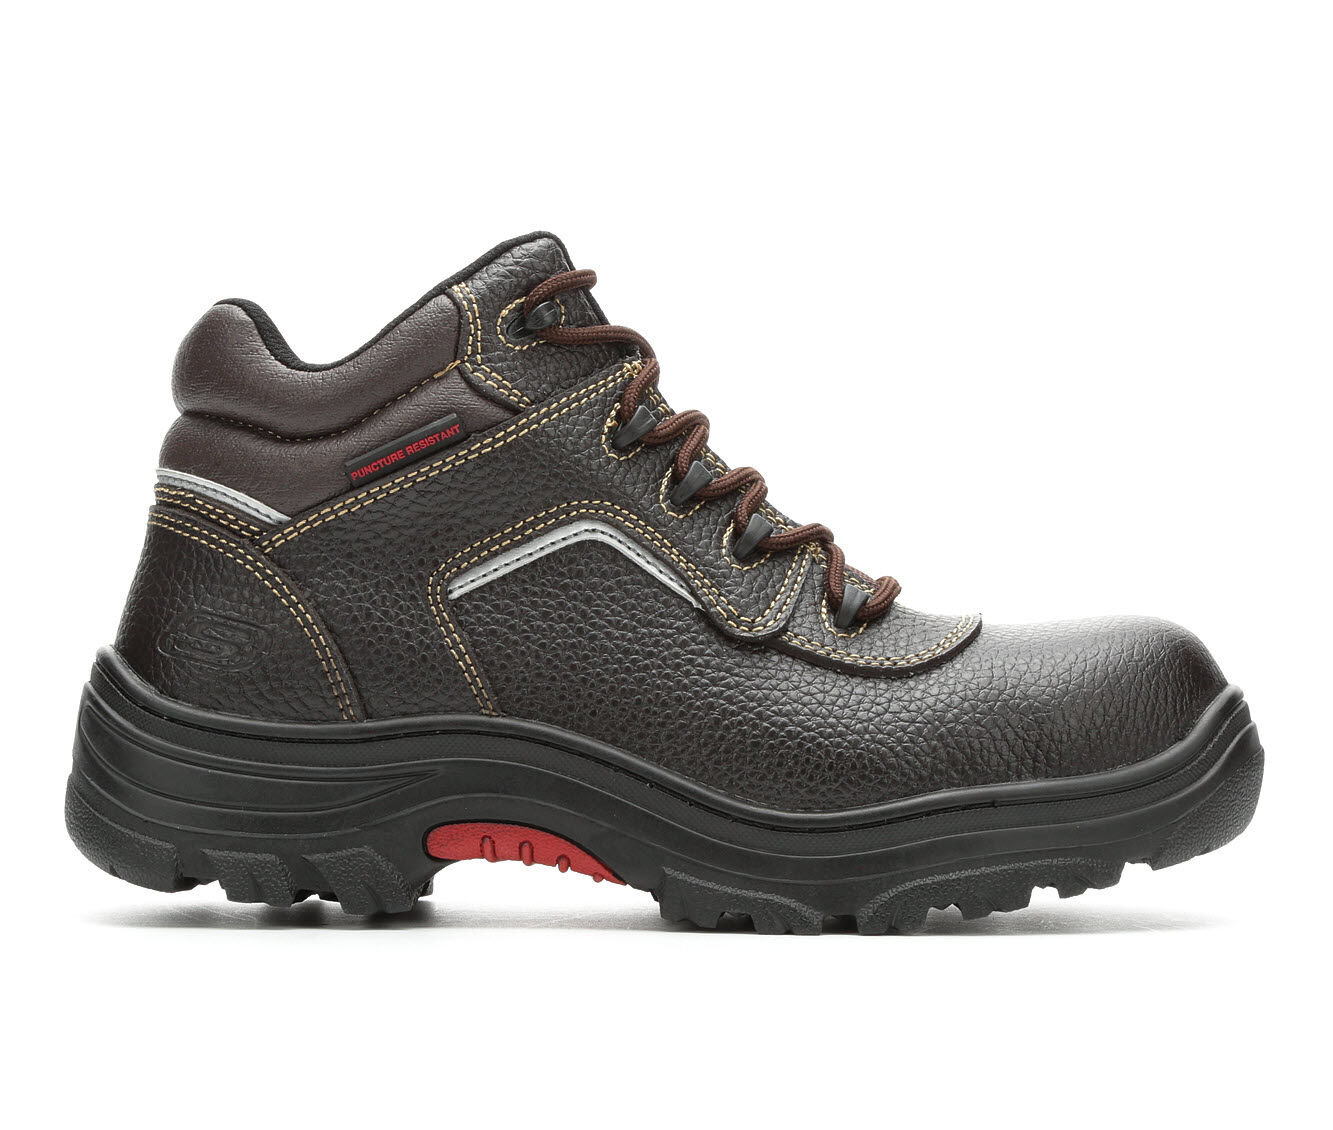 Floor Price Men's Skechers Work Workshire Burgin Sosder 77144 Work Boots Brown